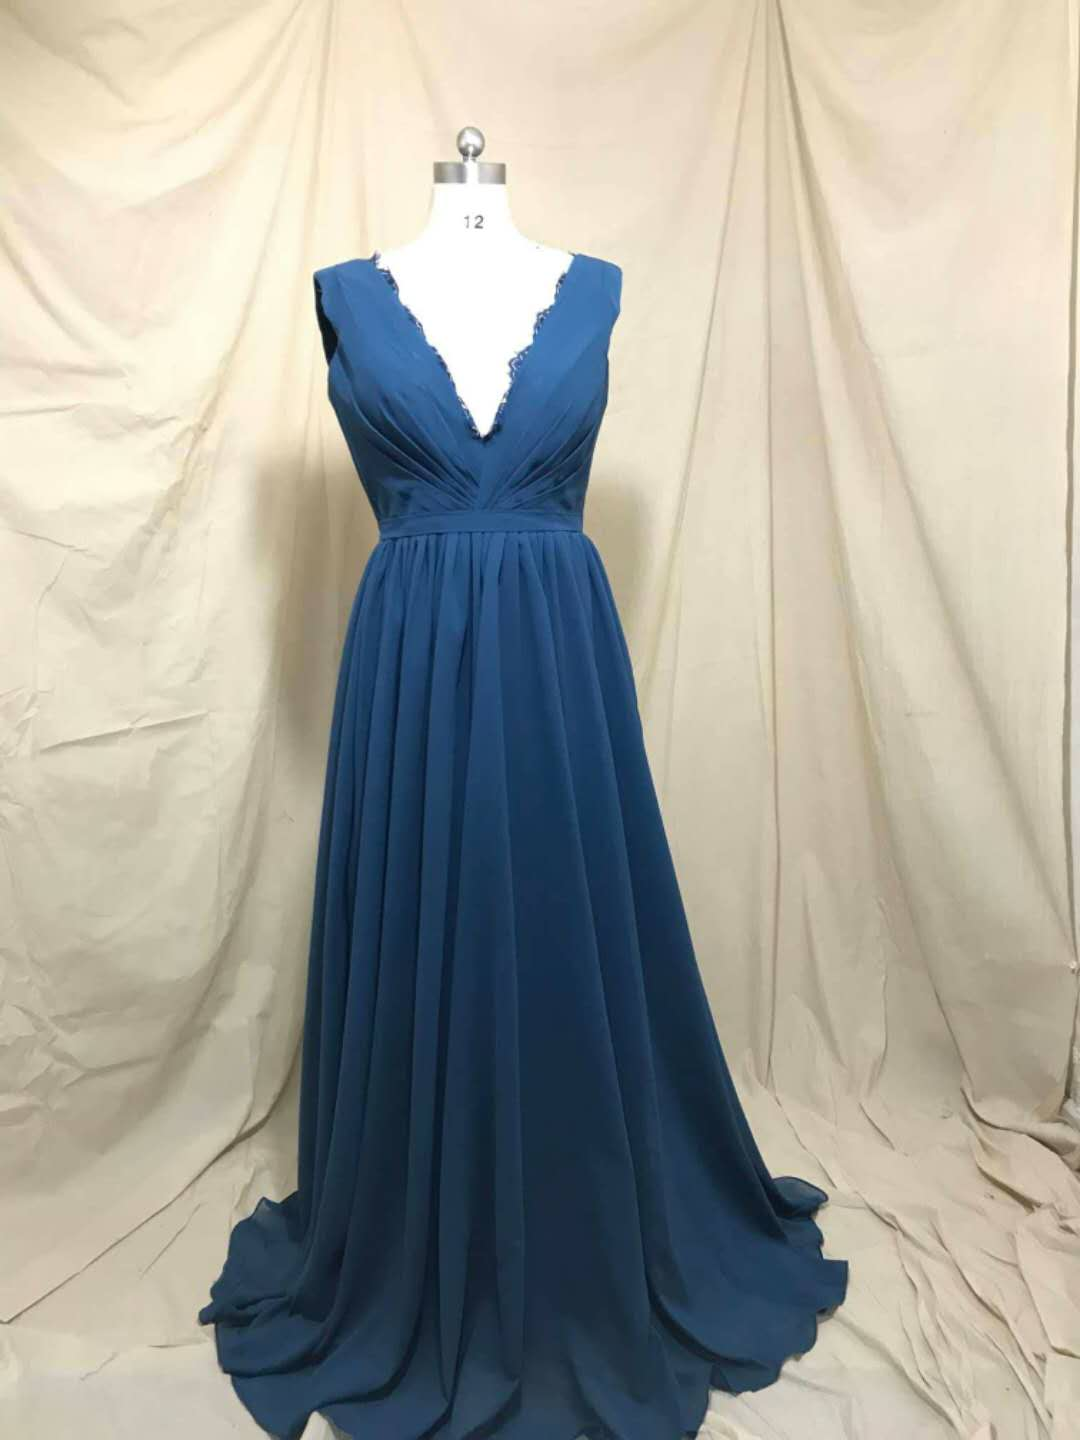 Sexy Women's A-Line Long Lace Pleated Bridesmaid Dresses with Pockets Chiffon V-Neck Custom Made Formal Wedding Party Dresses